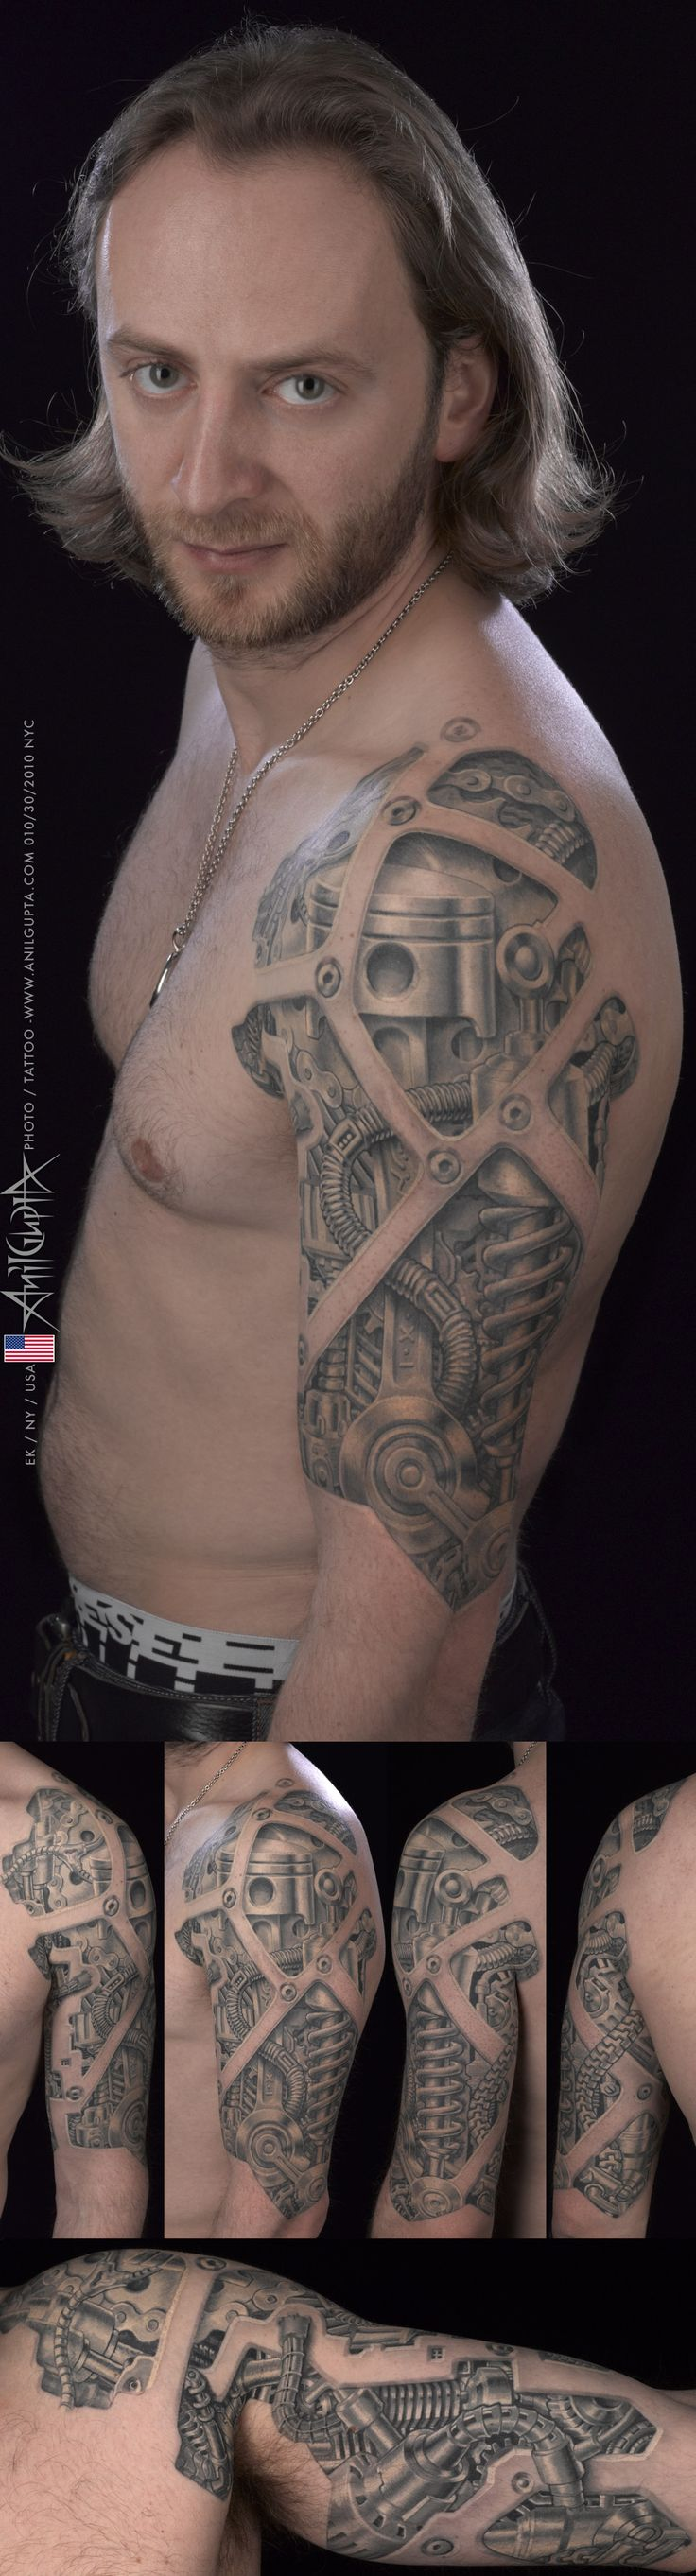 With that said 60 high horsepower piston tattoo designs for men - Find This Pin And More On Million Dollar Operation By Twickham3 Biomech Tattoo Best Tattoos